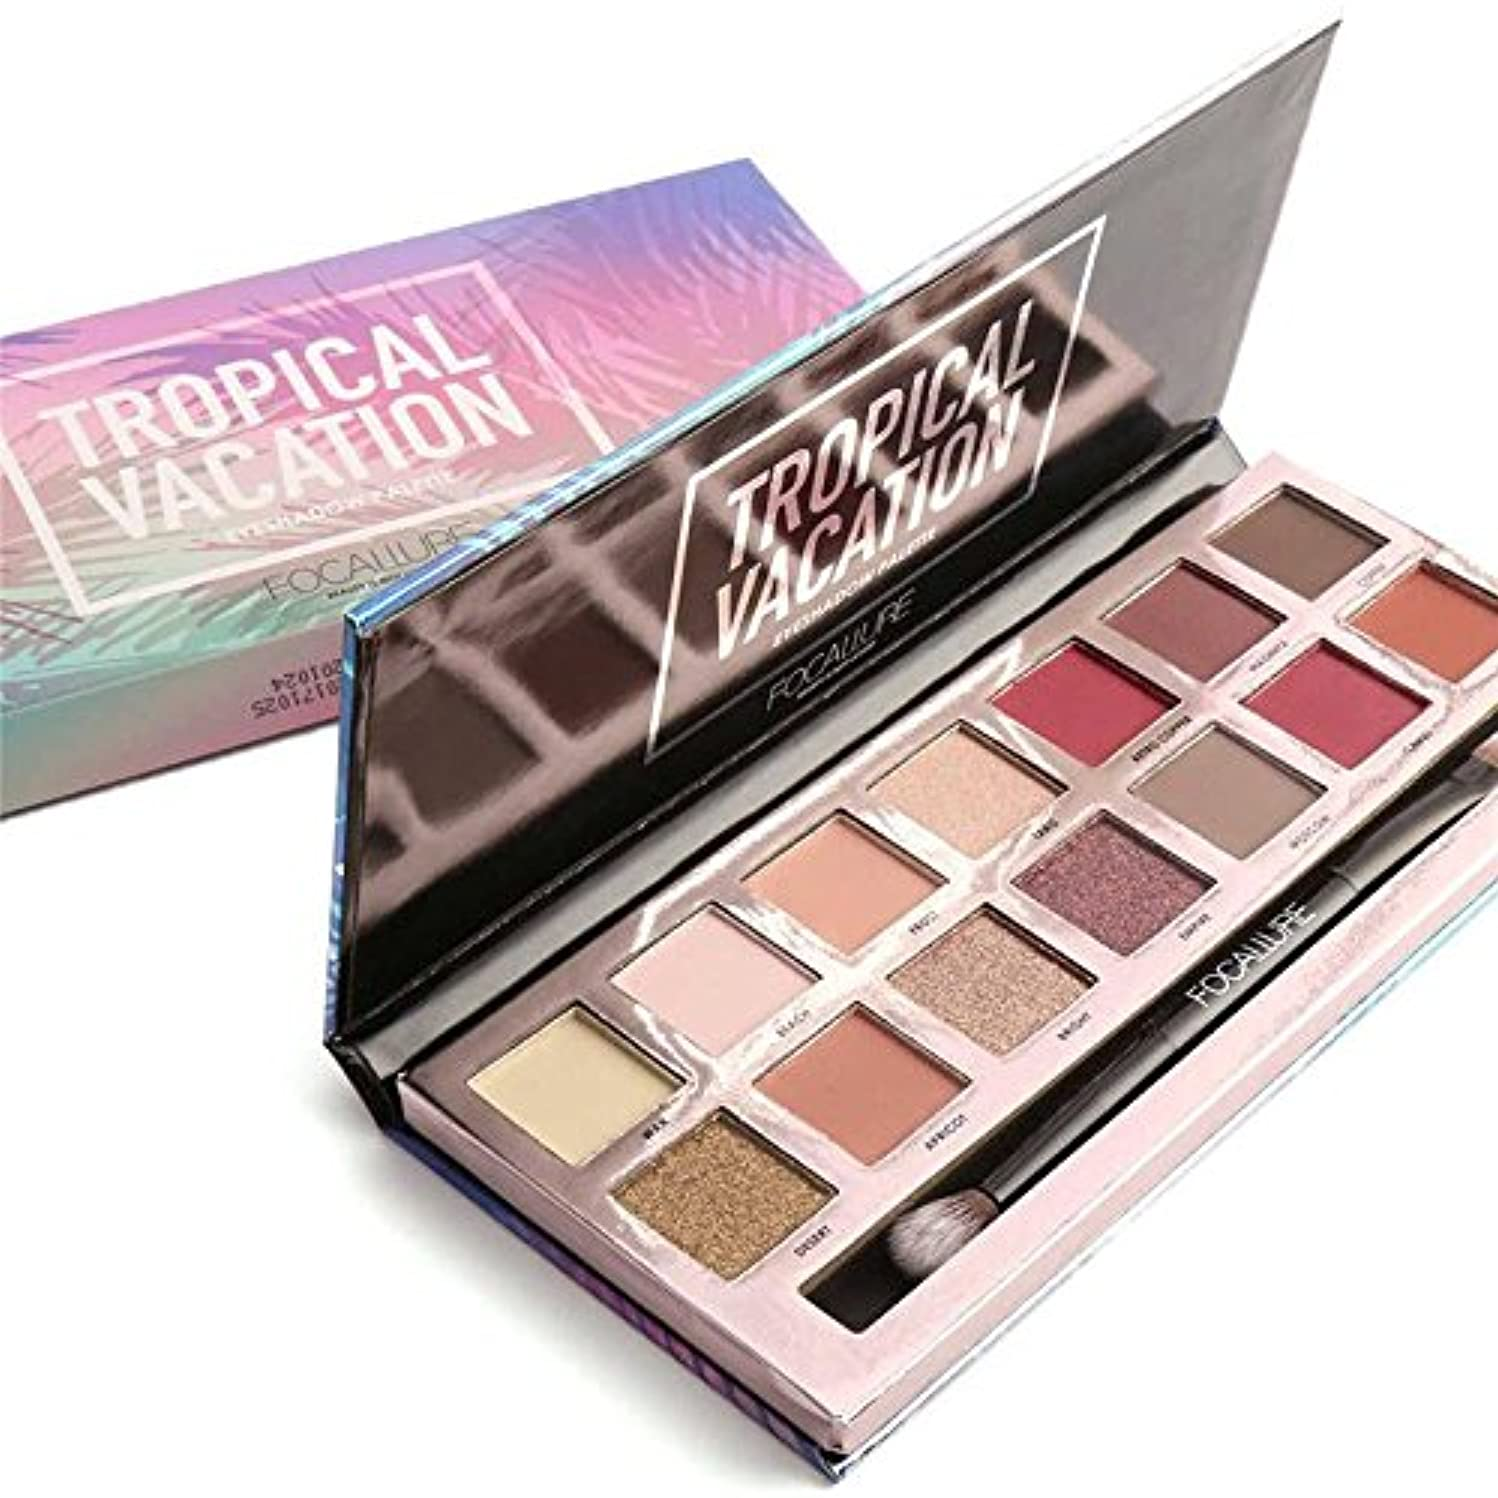 14 Colors Eyeshadow Palette Matte Glitter Shimmer Tropical Vacation Eyeshadow Palette with Brush 14色のマット?グリッター?シマー...